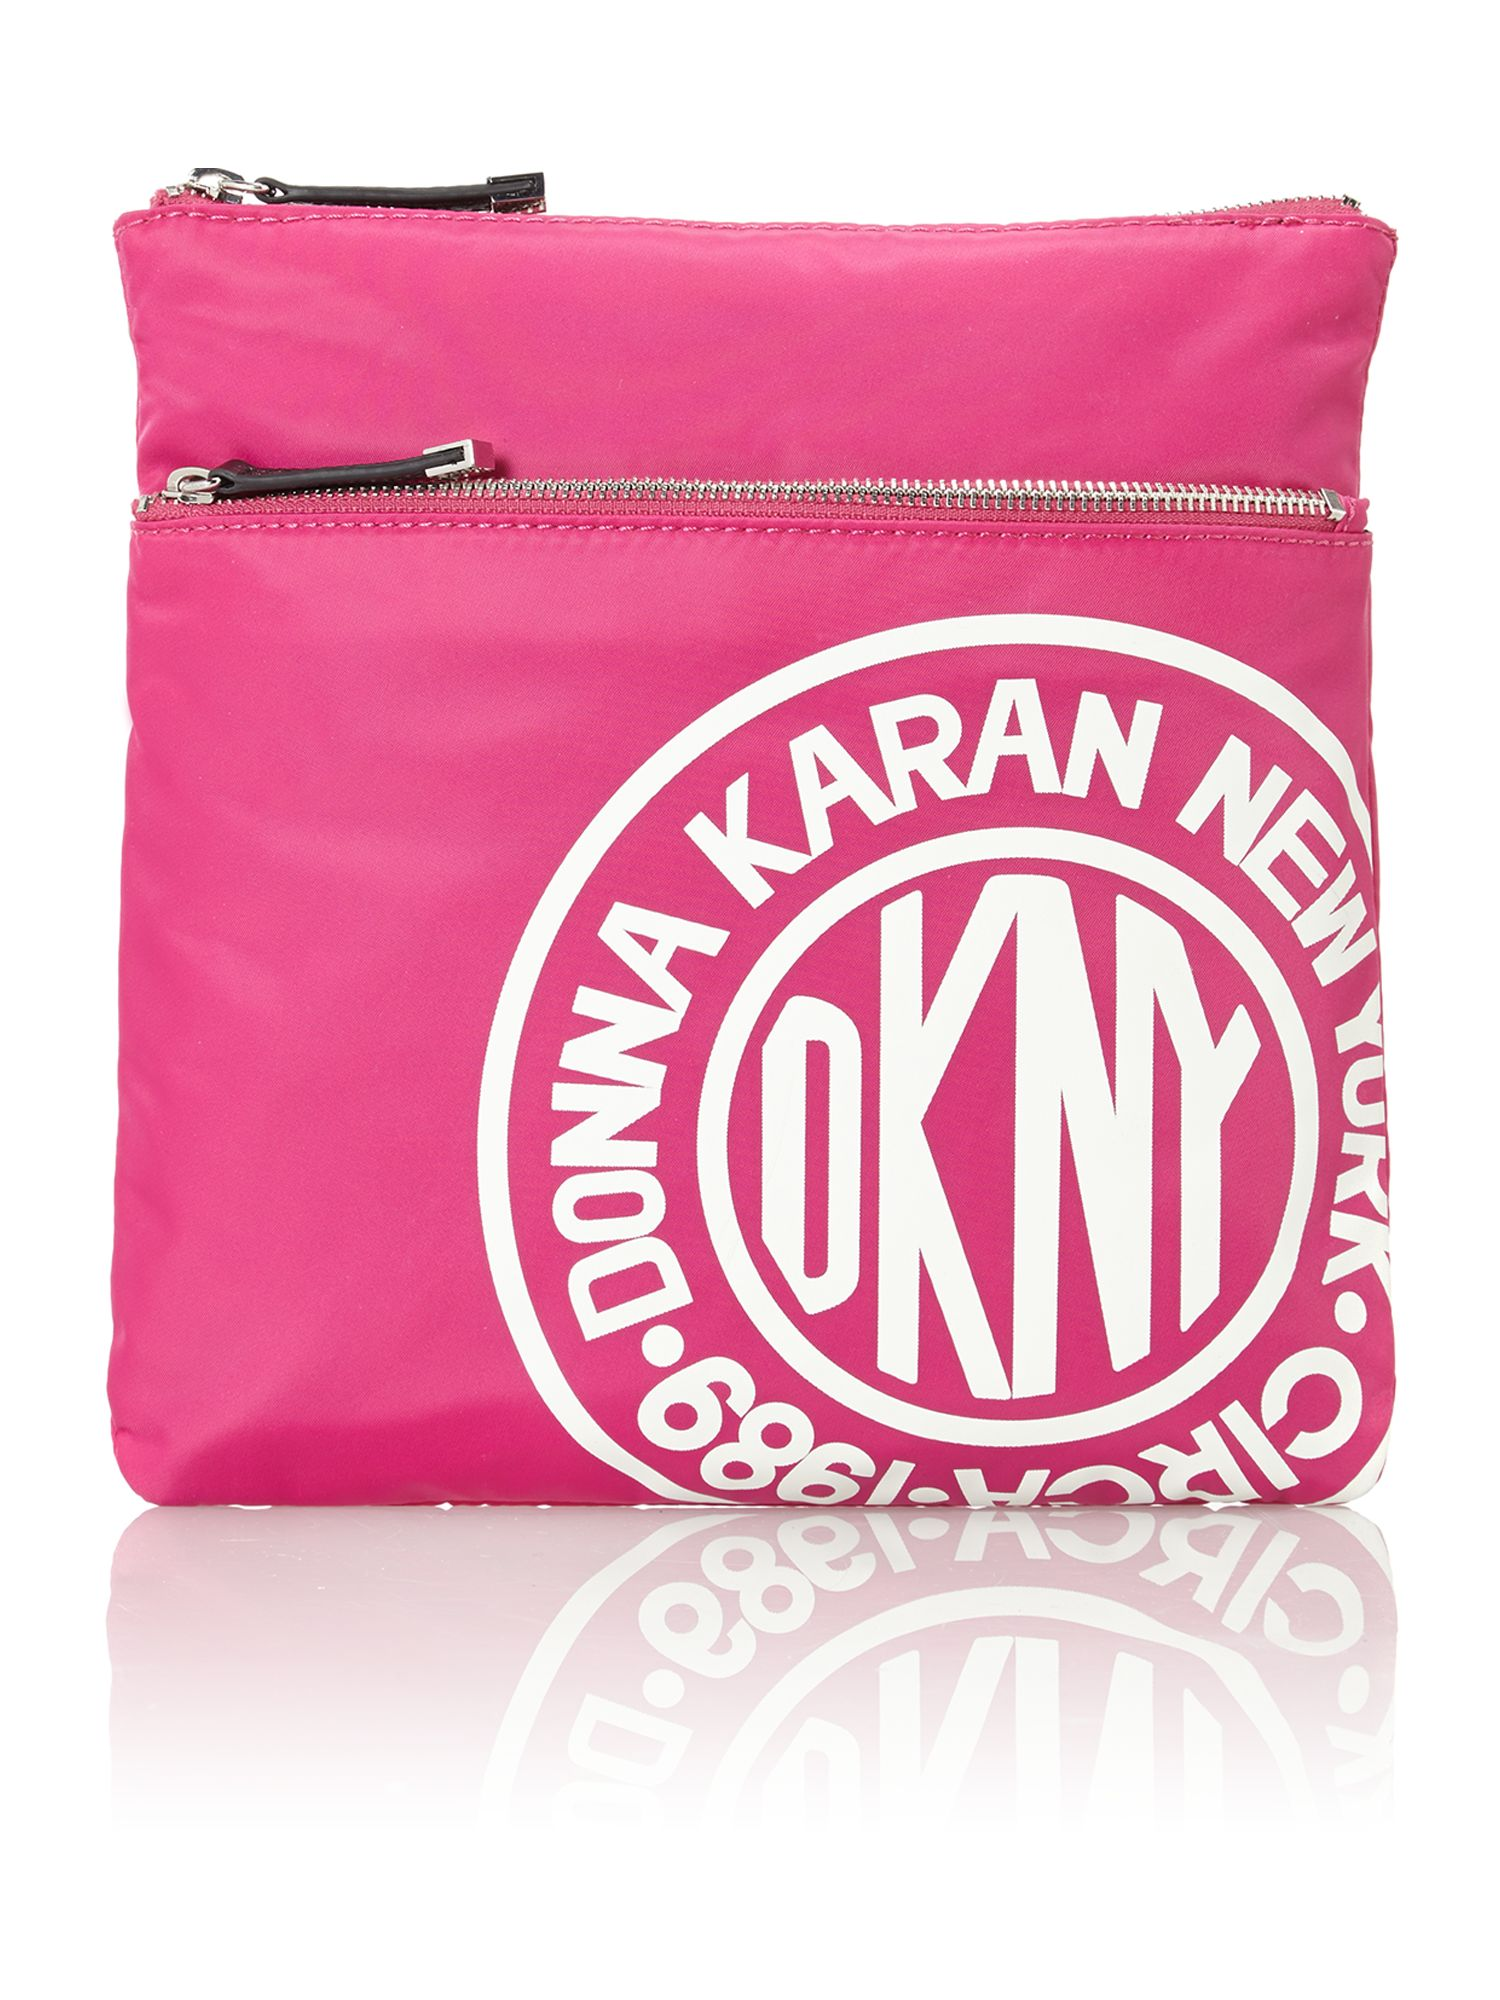 Nylon logo pink crossbody bag